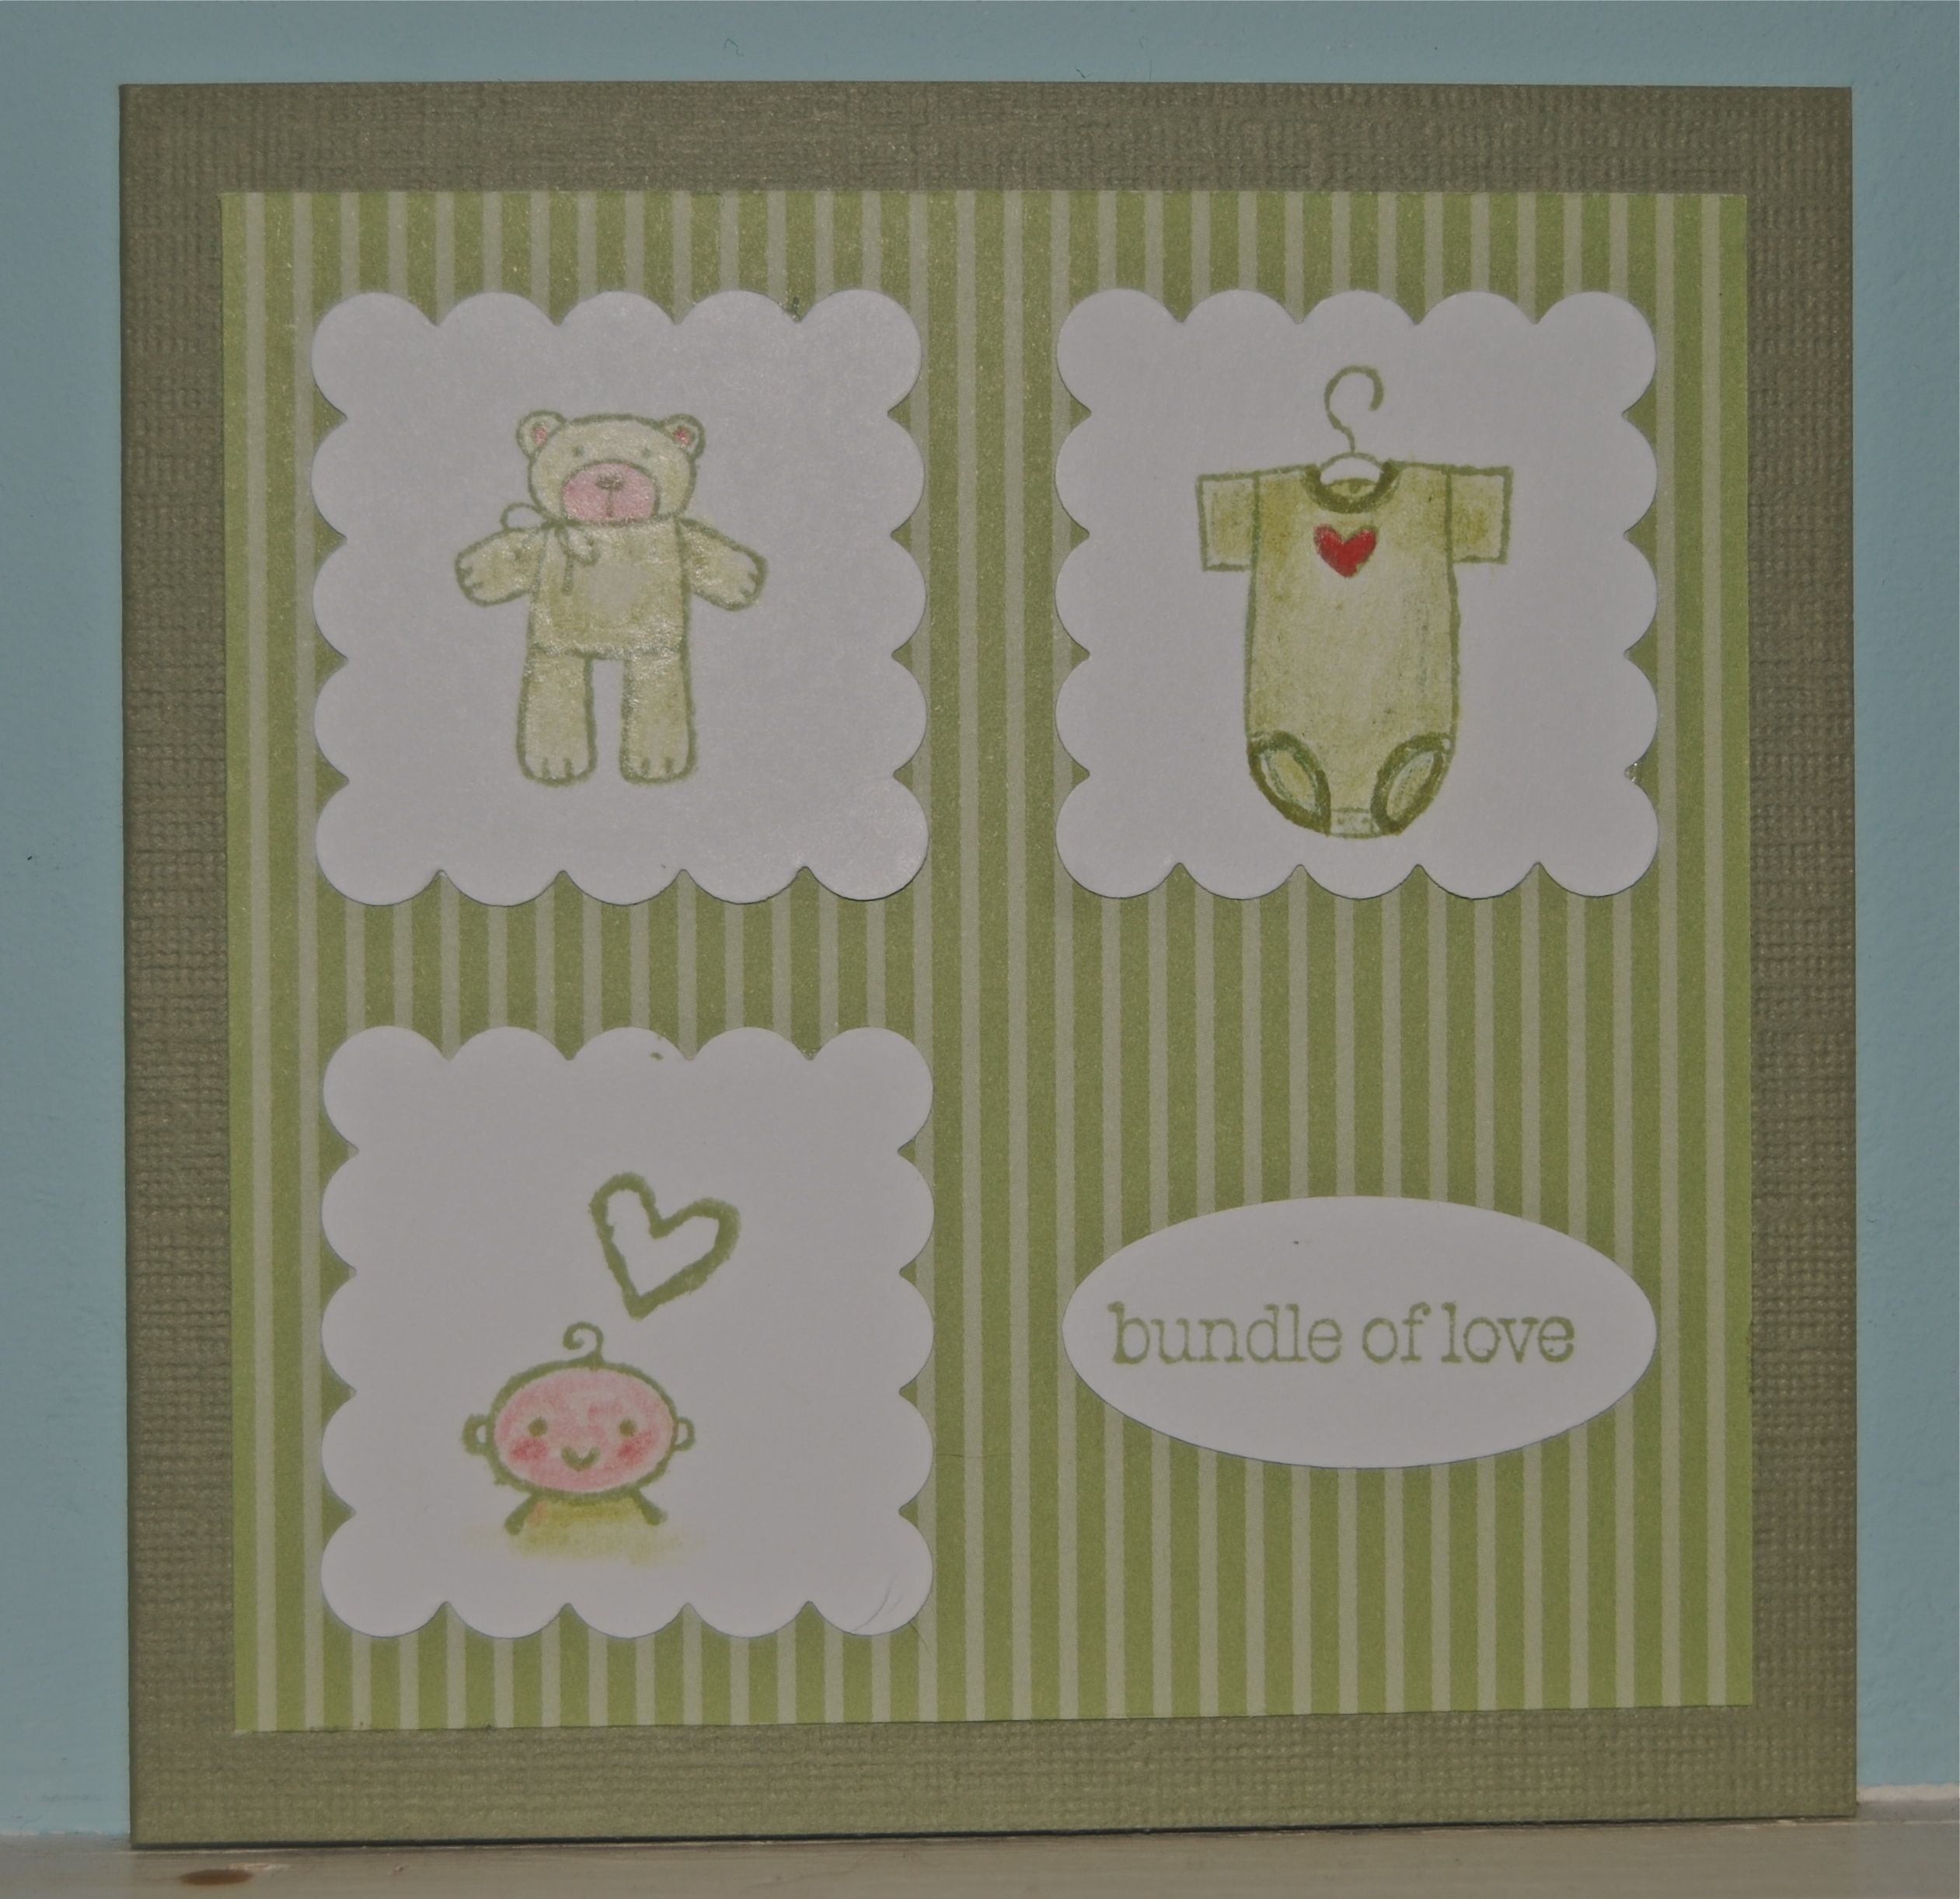 Card Making Ideas Stampin Up Part - 20: Stampin Up Baby Bundle Pinterest | Baby Bundle Of Love Cardu2026 ::  LakesideStamper.